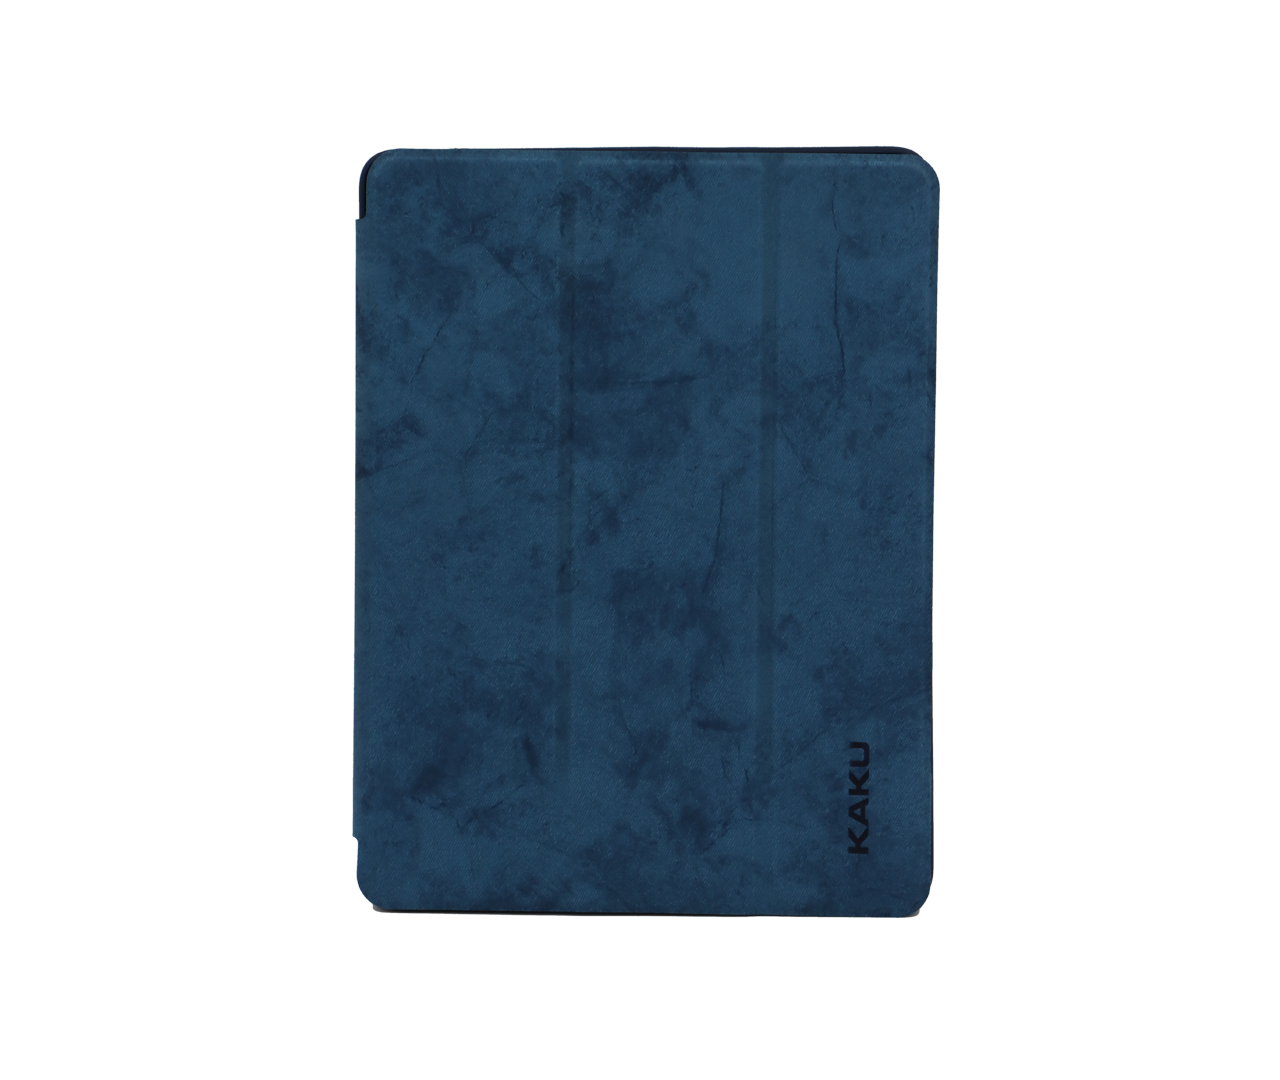 IKAKU Pen Slot Series Flip Cover For Ipad Air 2 / A1566 / A1567 (Blue)